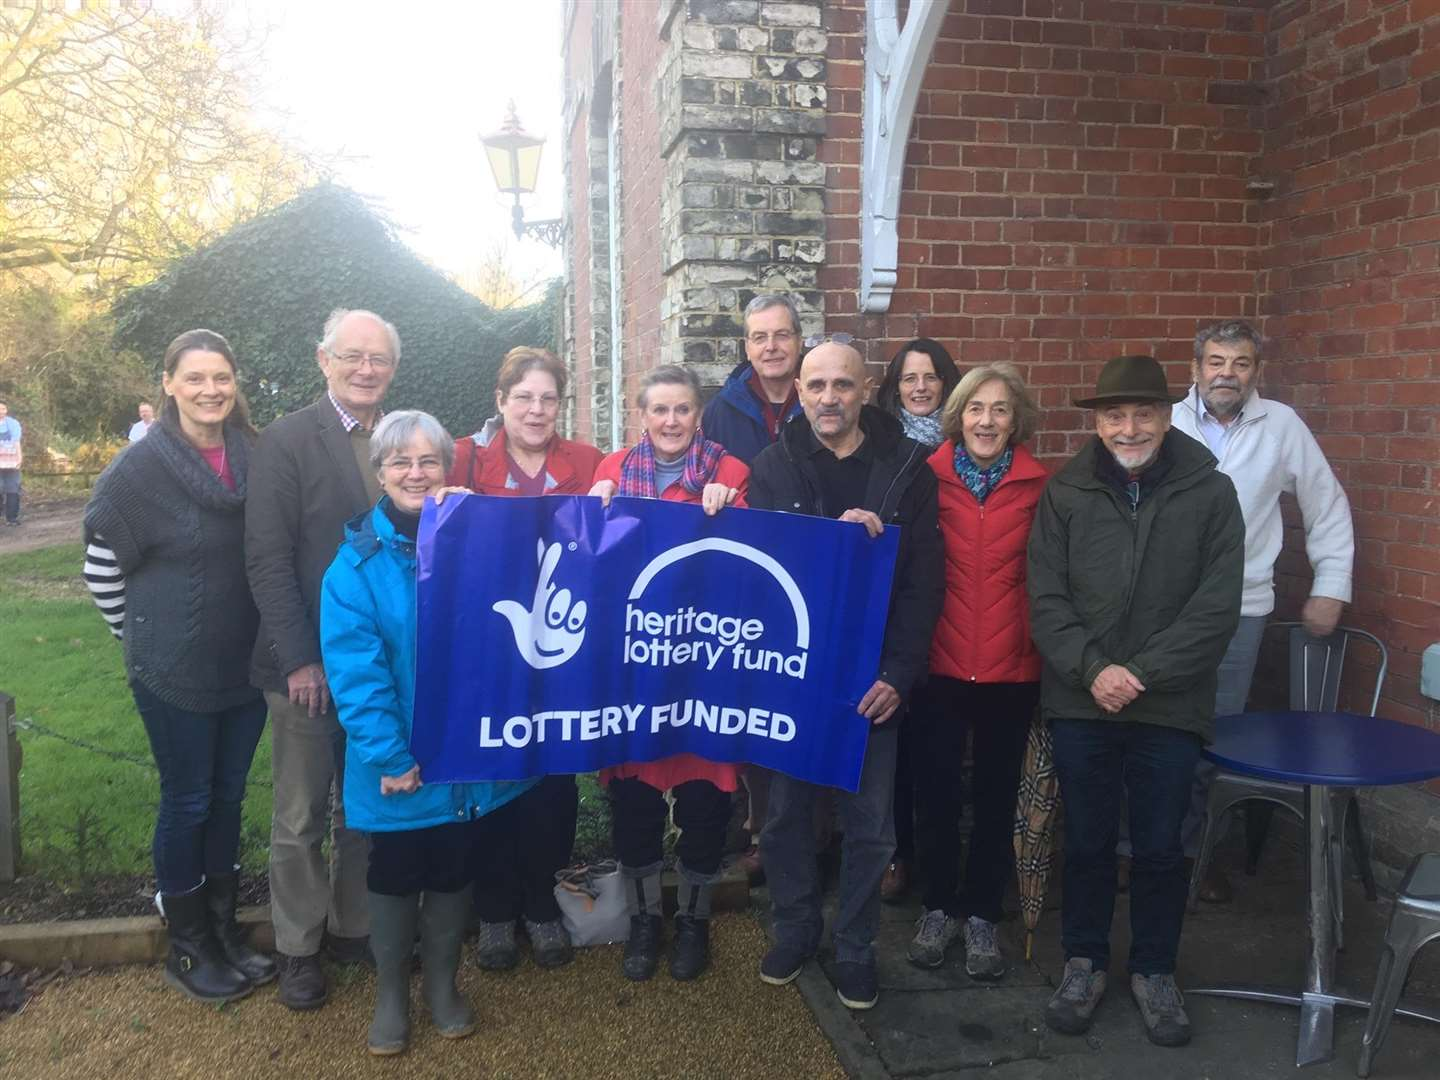 Supporters of the Heritage Lottery Fund project at Clare Castle Country Park are treated to a thank you event (6057484)